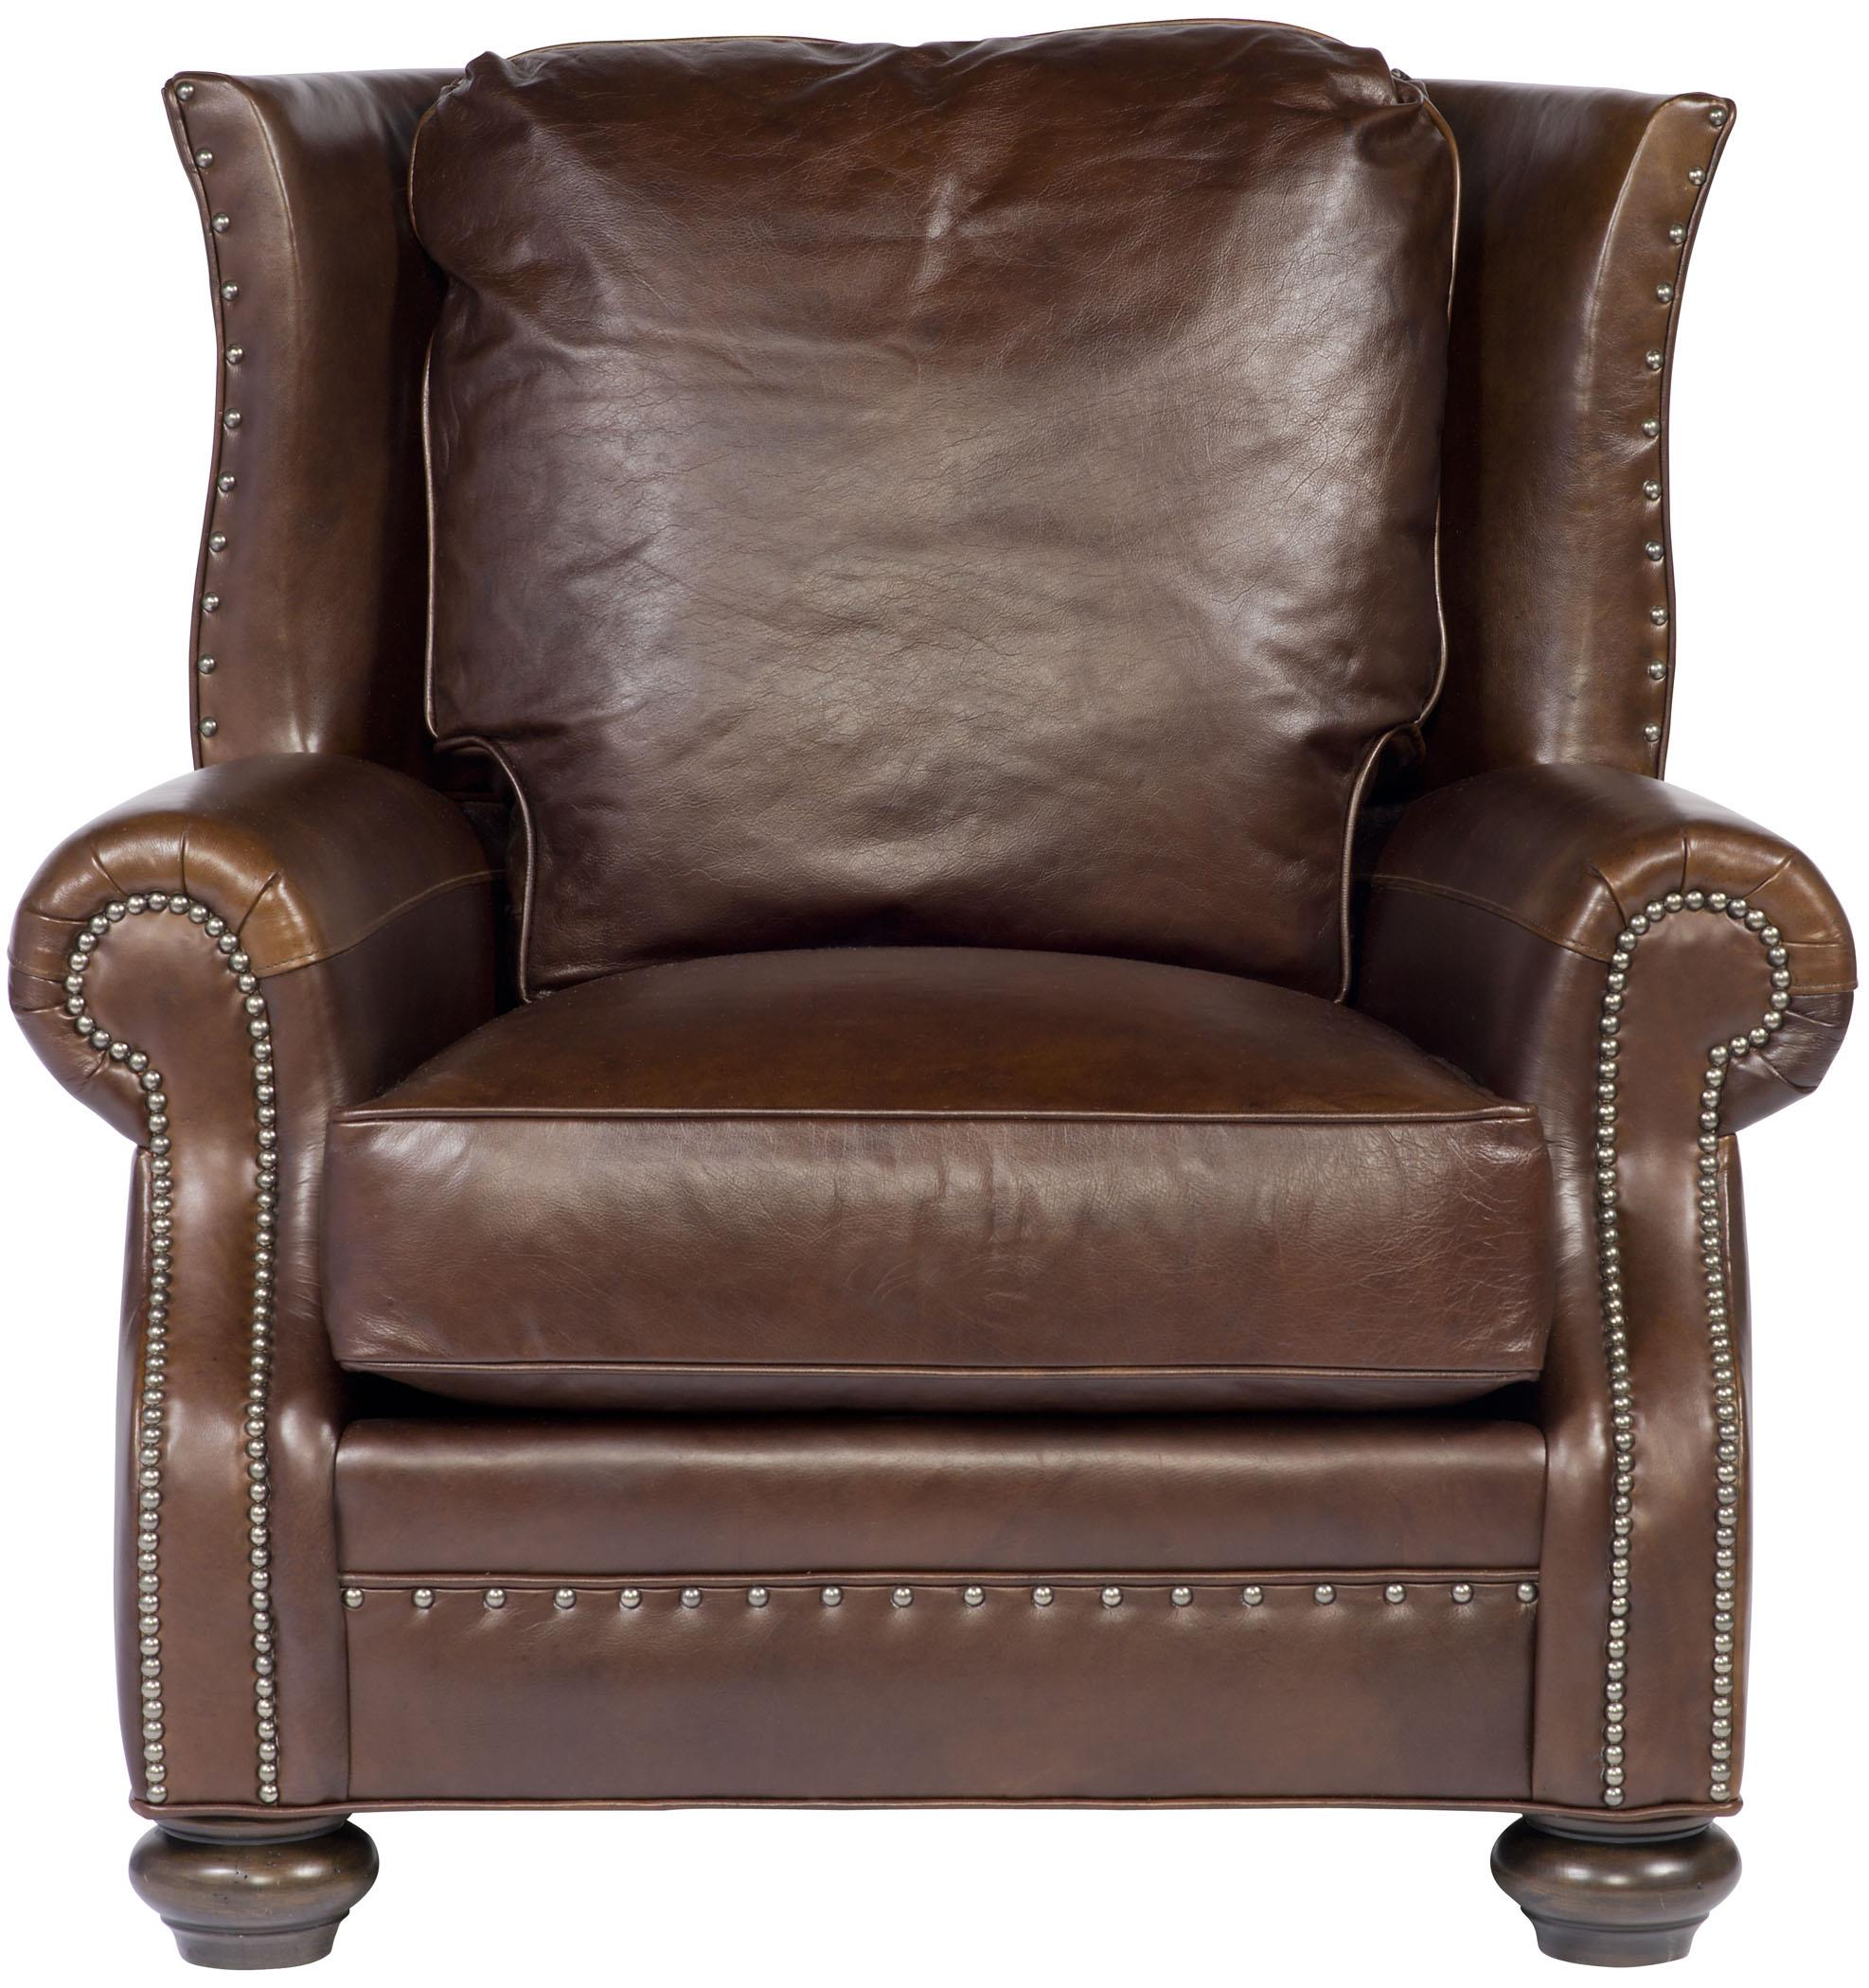 Accent Chairs Wing Chair by Vanguard Furniture at Sprintz Furniture